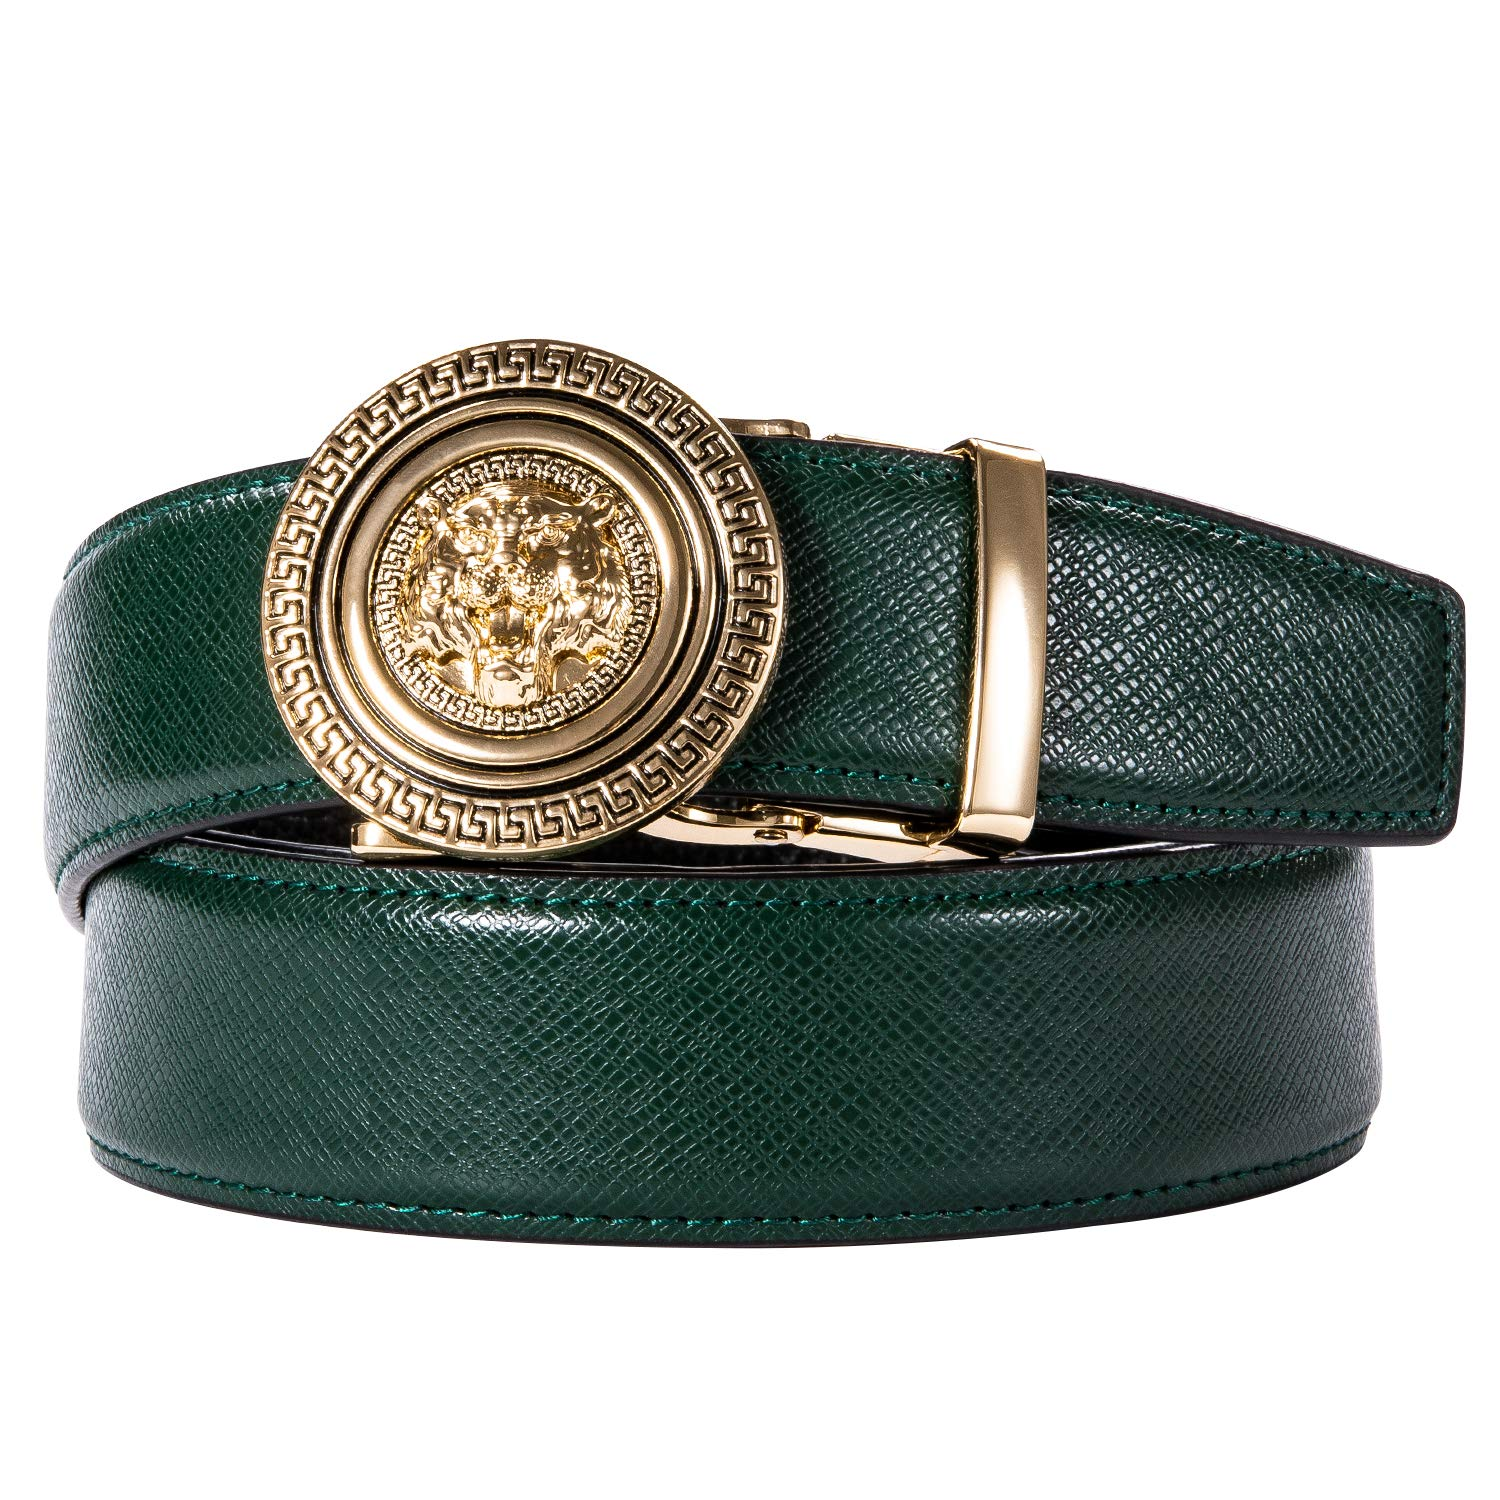 Barry.Wang Mens Formal Belt,Full Grain Leather with Automatic Buckle Nickel Free Luxury Gift